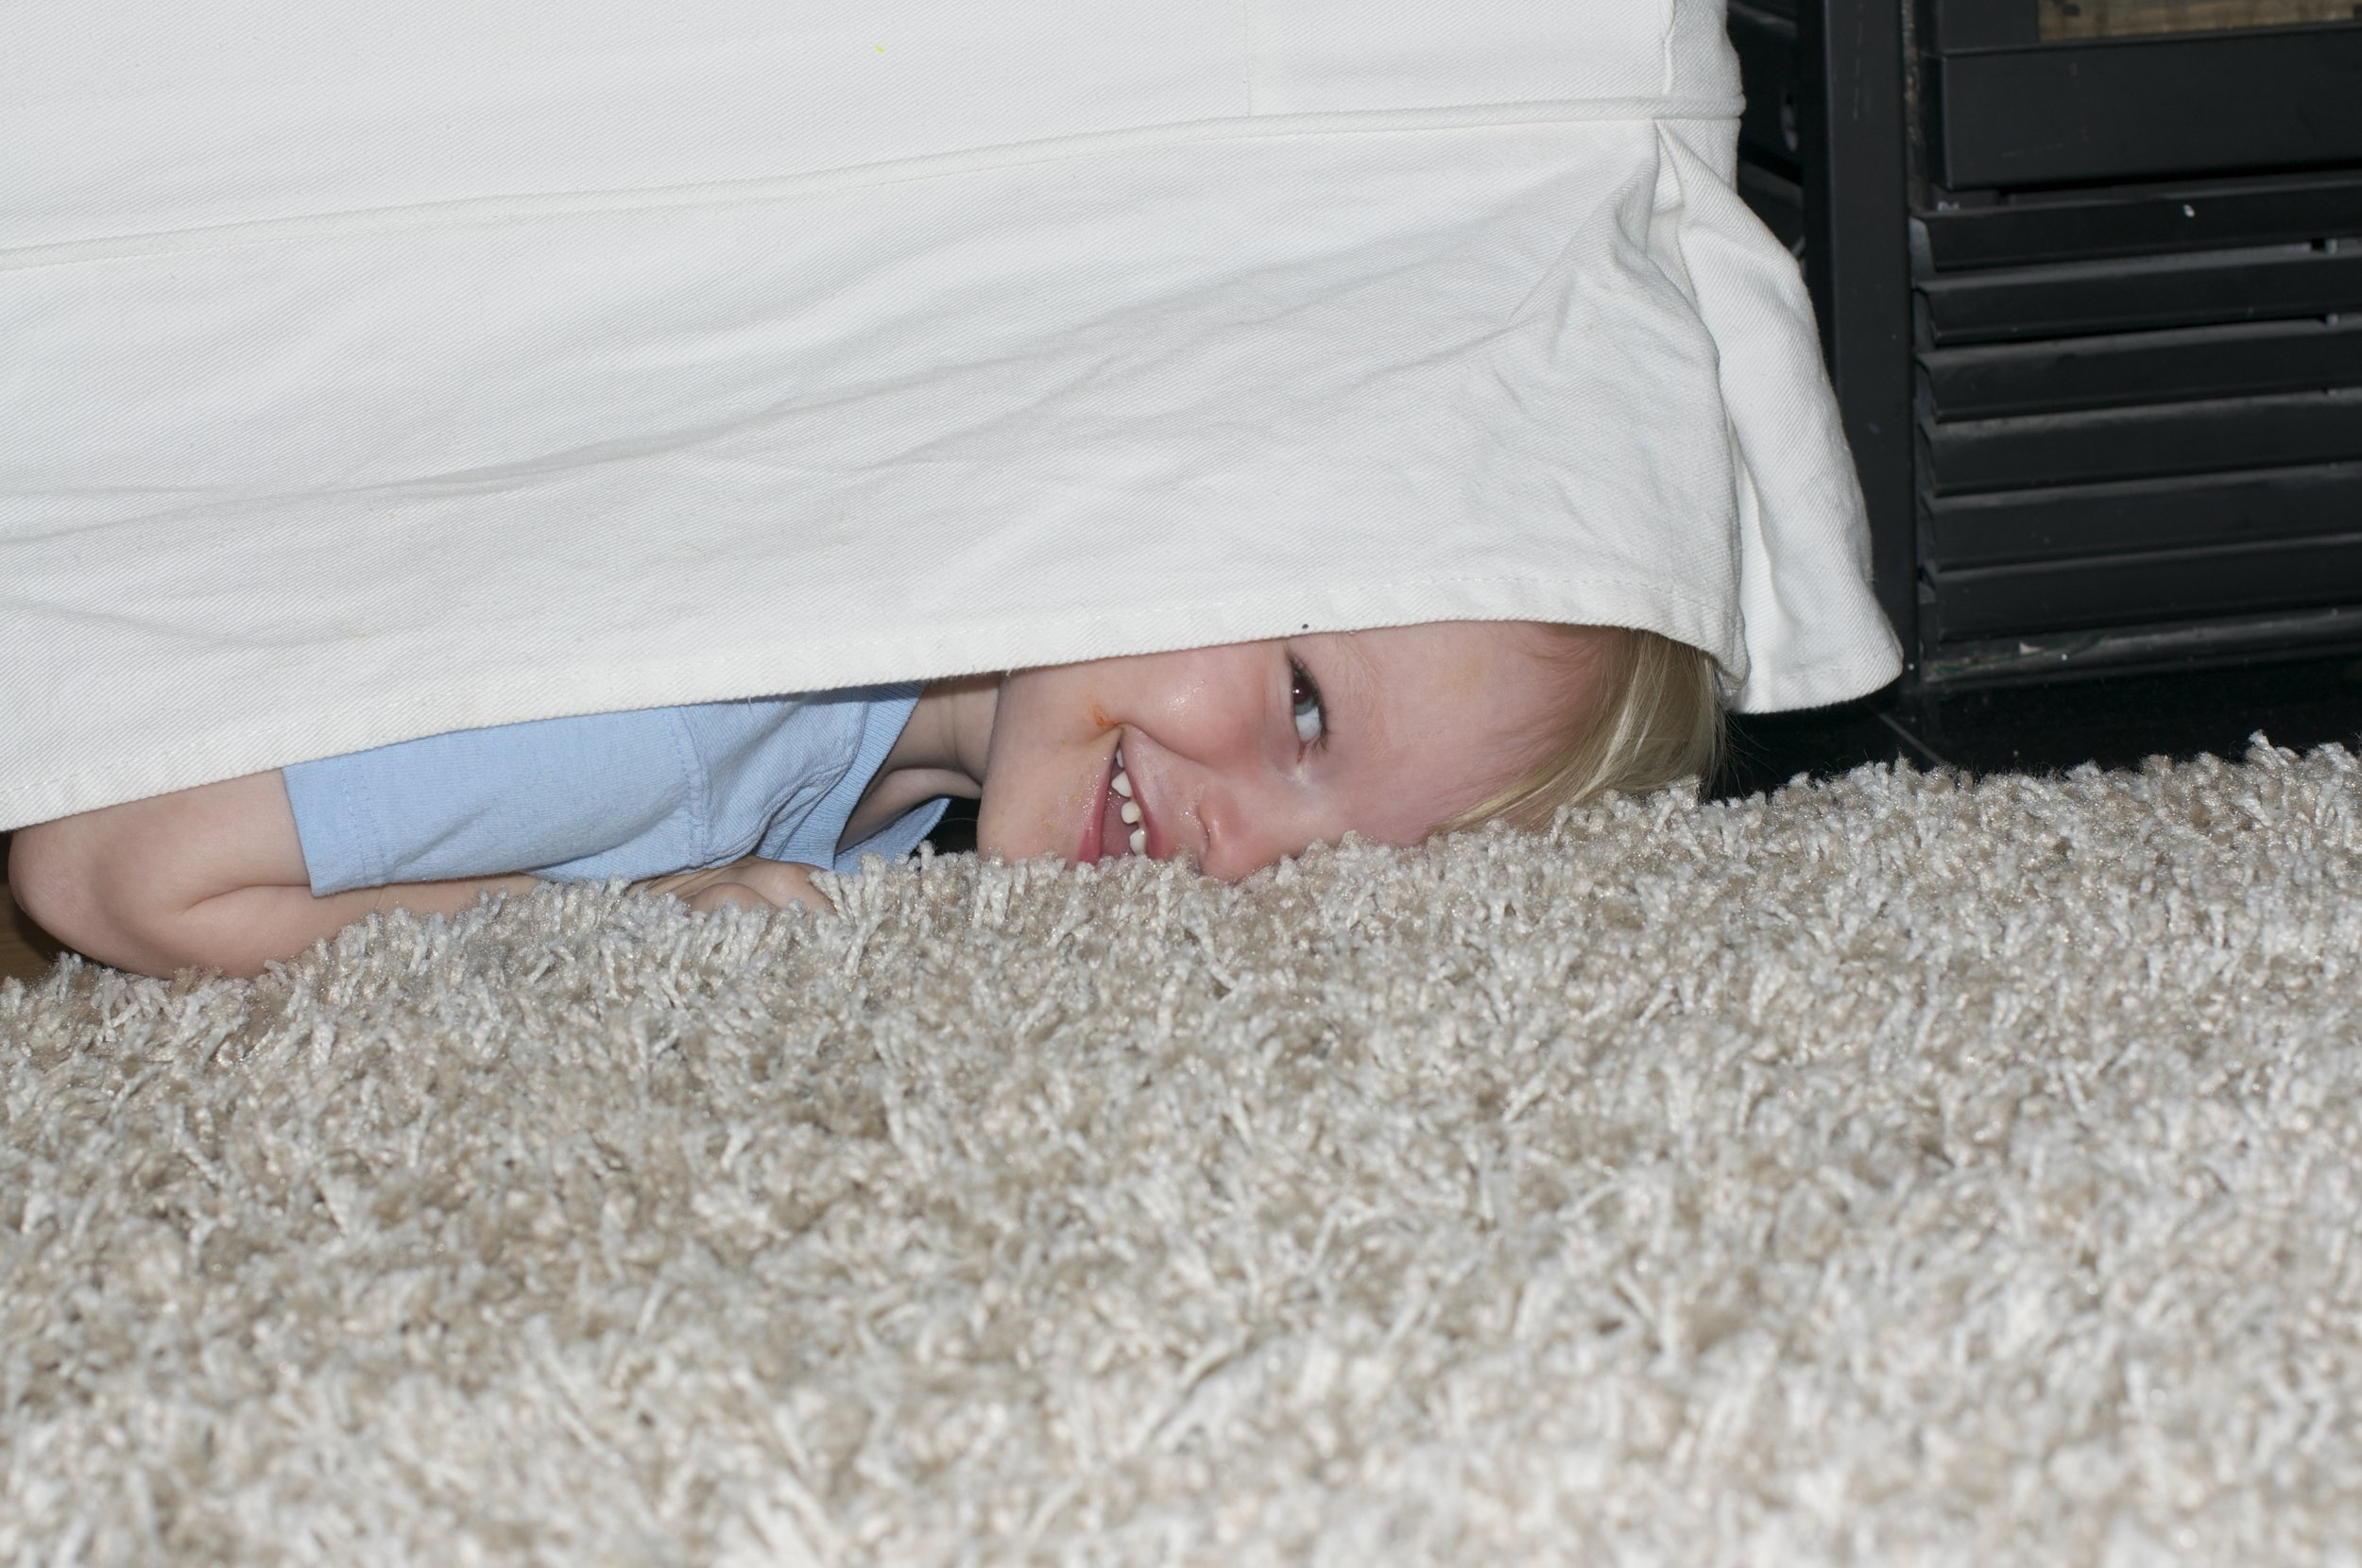 Sometimes They go into hiding.